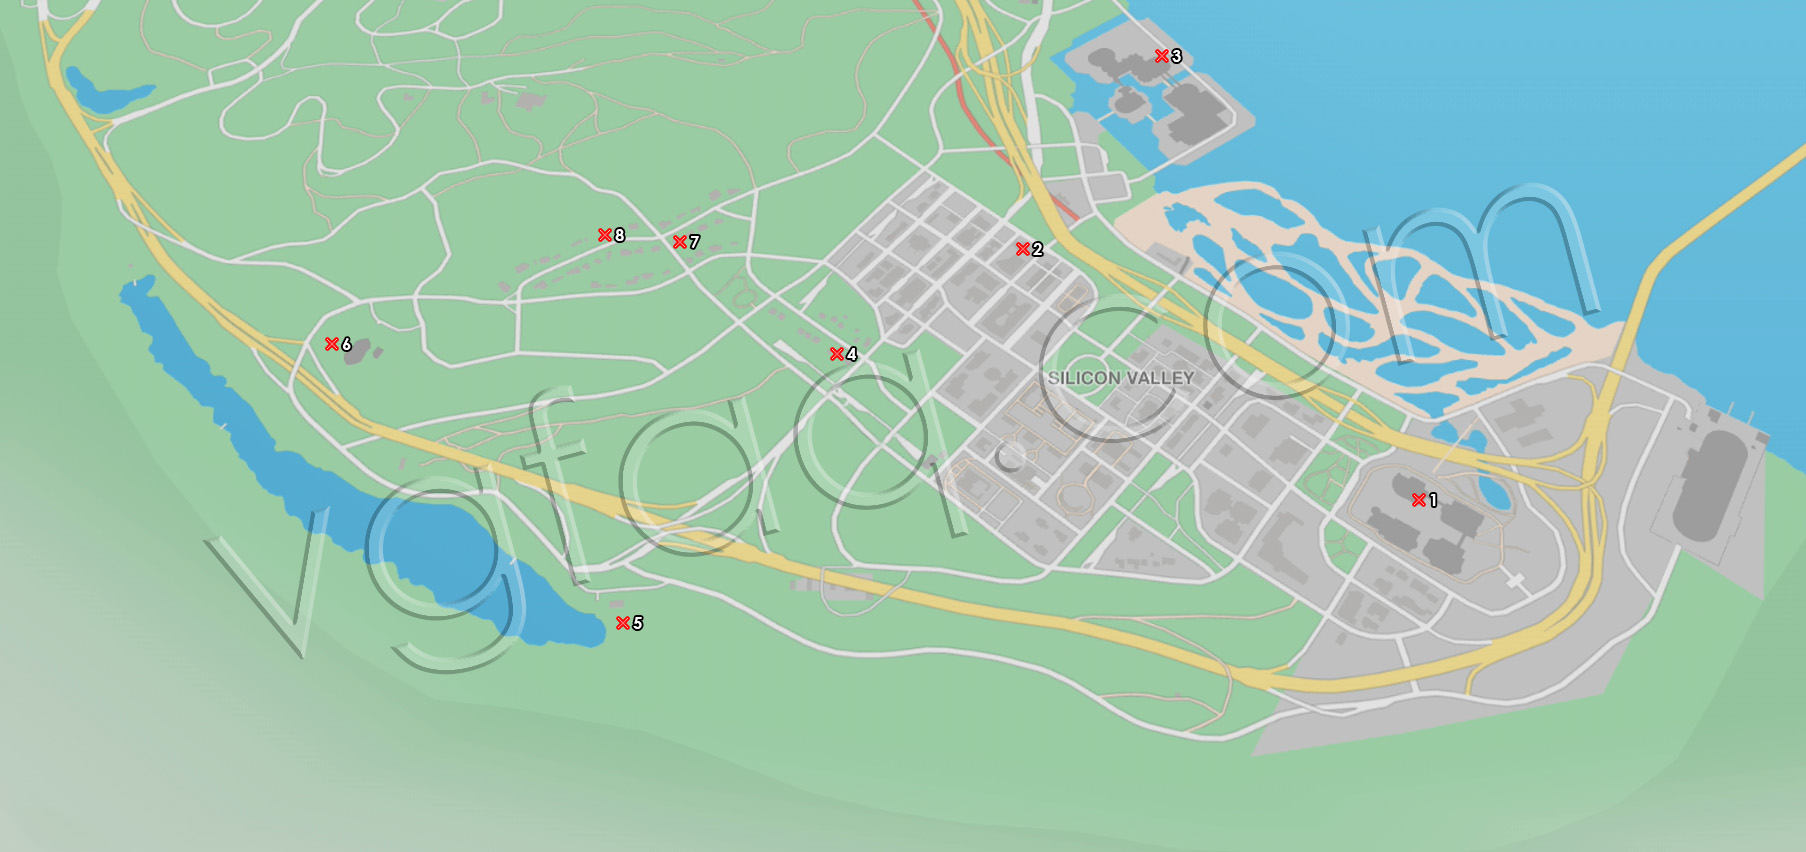 Watch Dogs 2 Silicon Valley Paint Jobs Locations Map